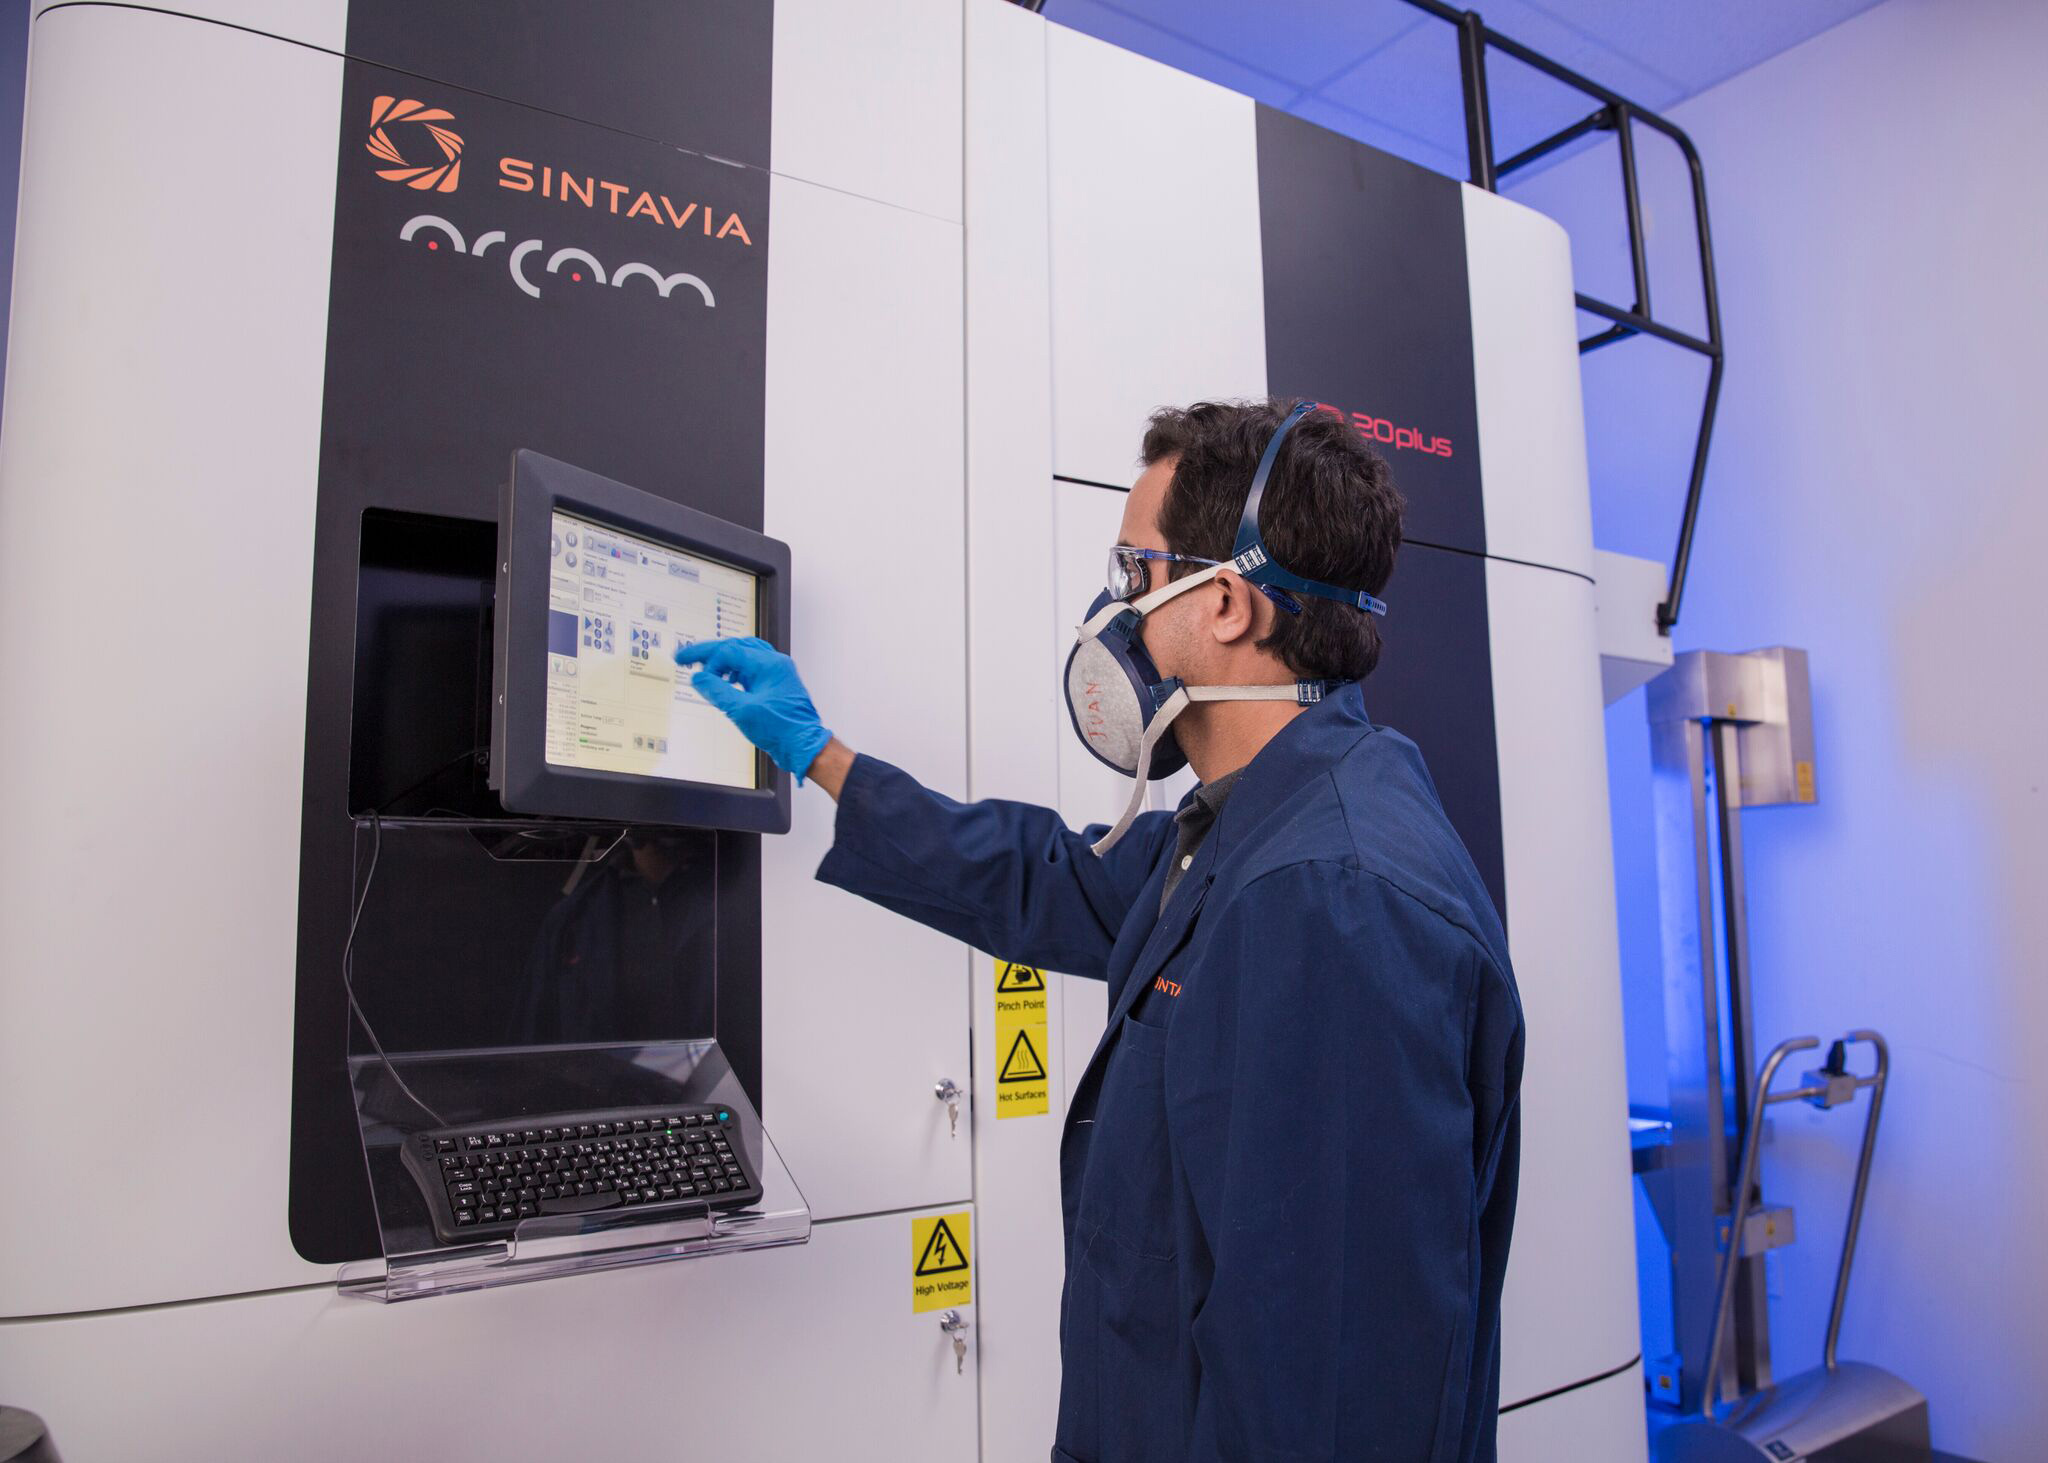 Sintavia's proprietary parameters, processes and quality control procedures make it possible to serially manufacture AM parts and audit quality components for precision industries. (Photo: Business Wire)